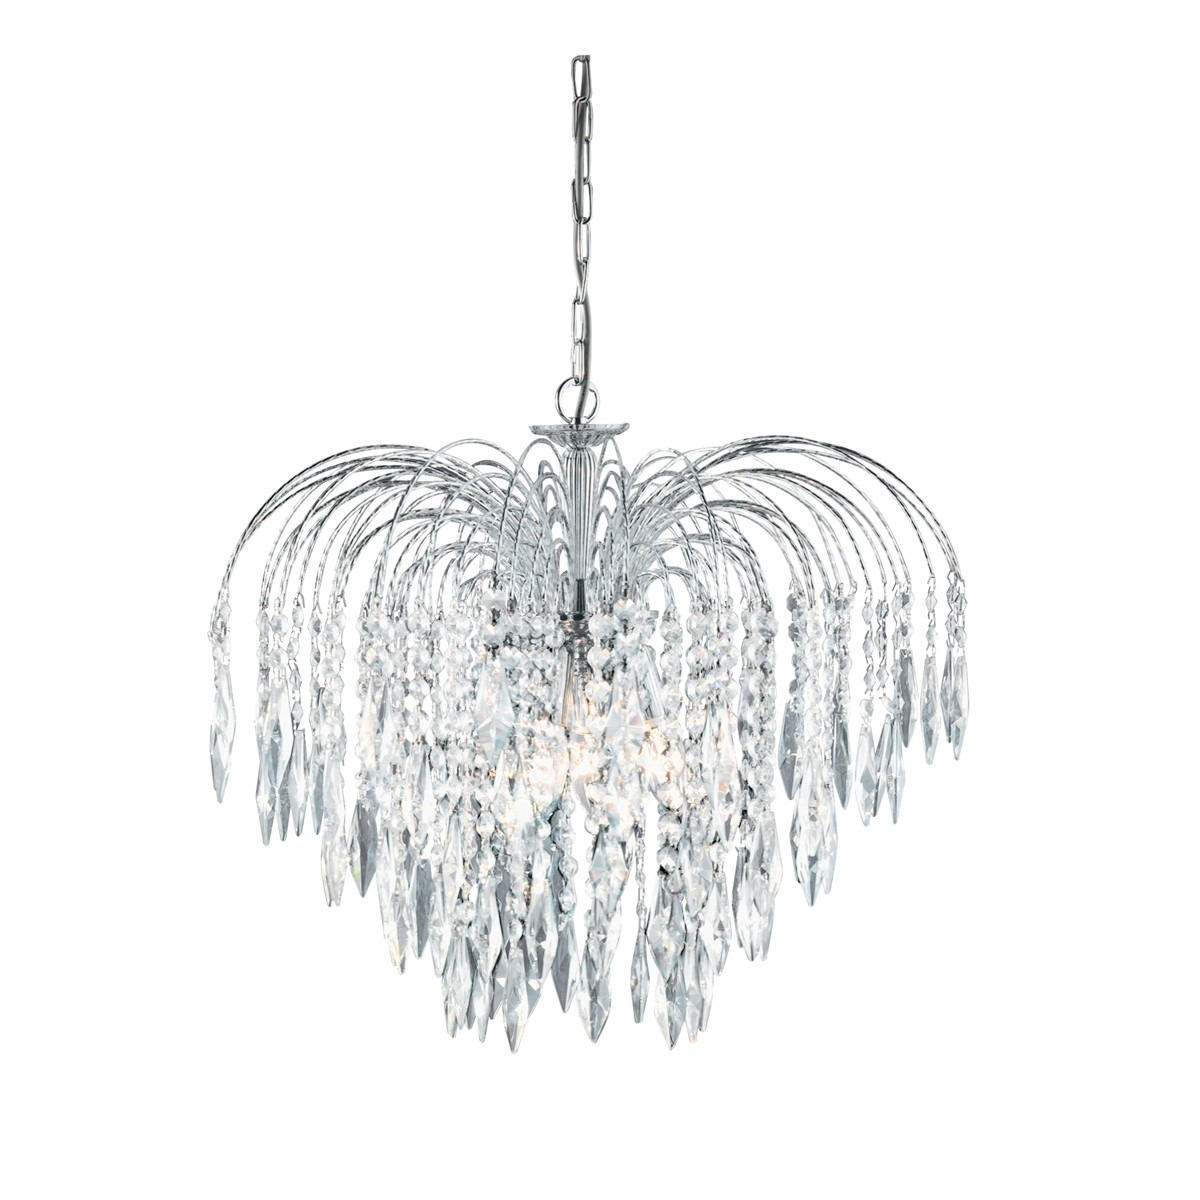 Waterfall 5 Light Crystal Chandelier Hegarty Lighting Ltd Throughout Crystal Waterfall Chandelier (View 12 of 12)